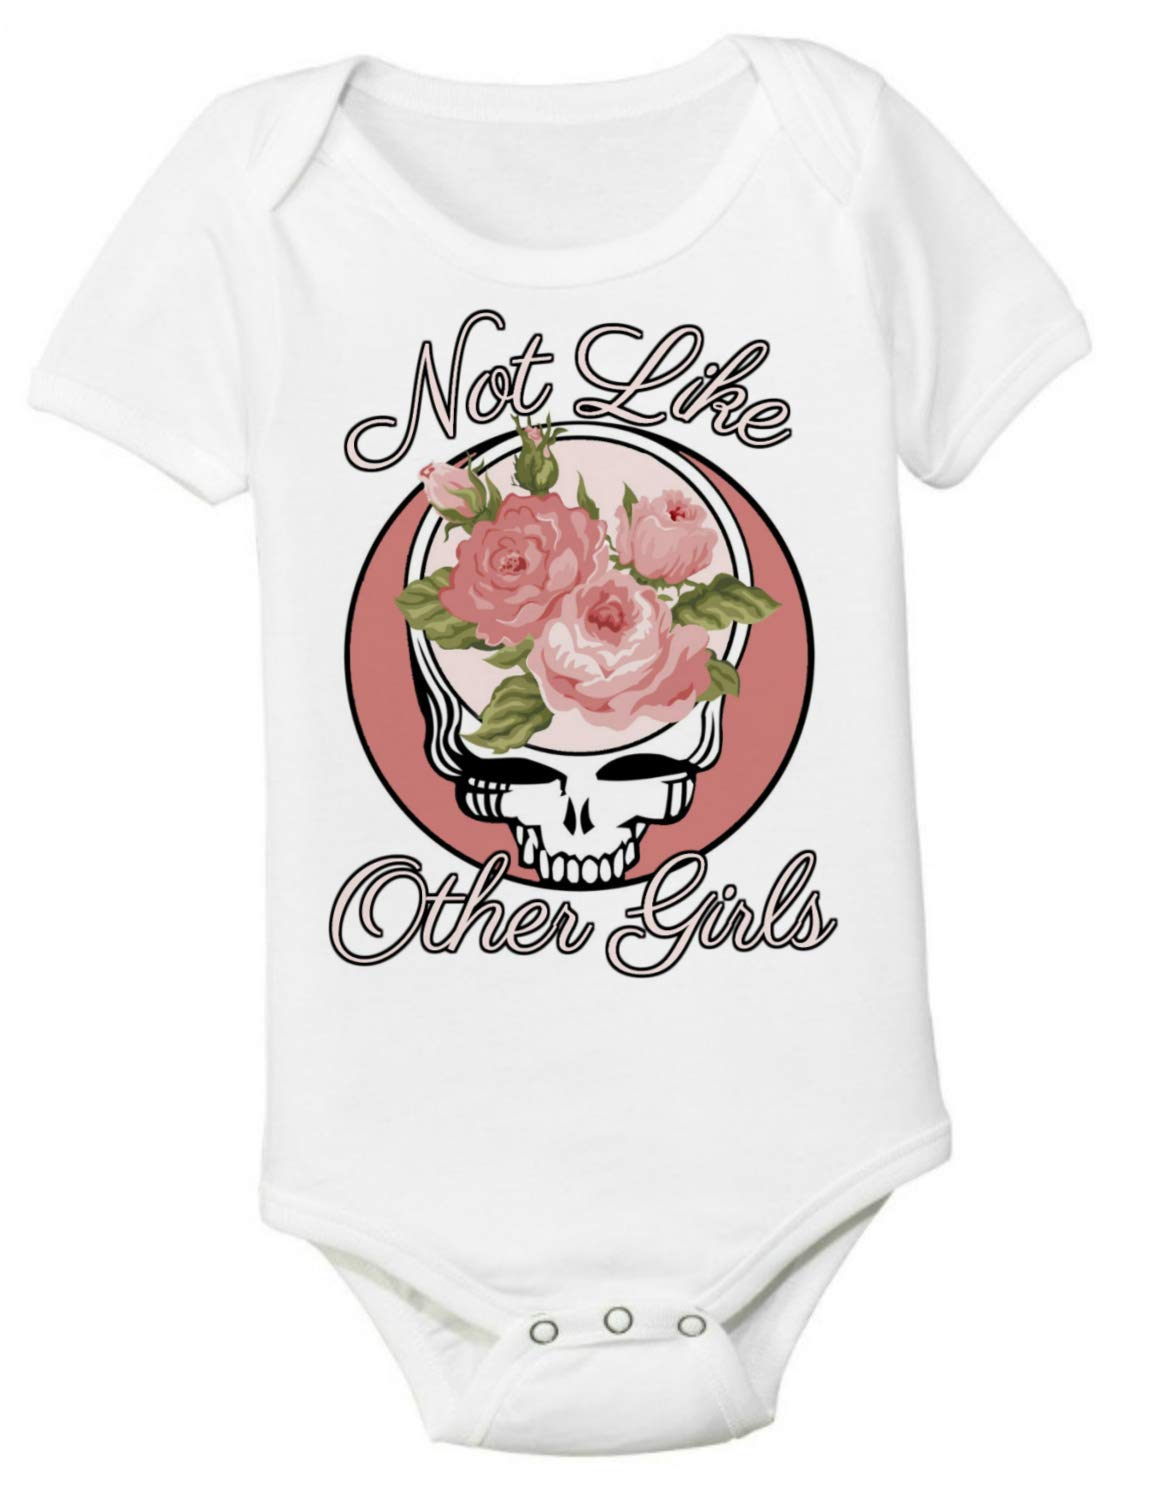 Not Like Award the Other Girls Steal Bod Onesie Baby Your Flowers Face Baltimore Mall